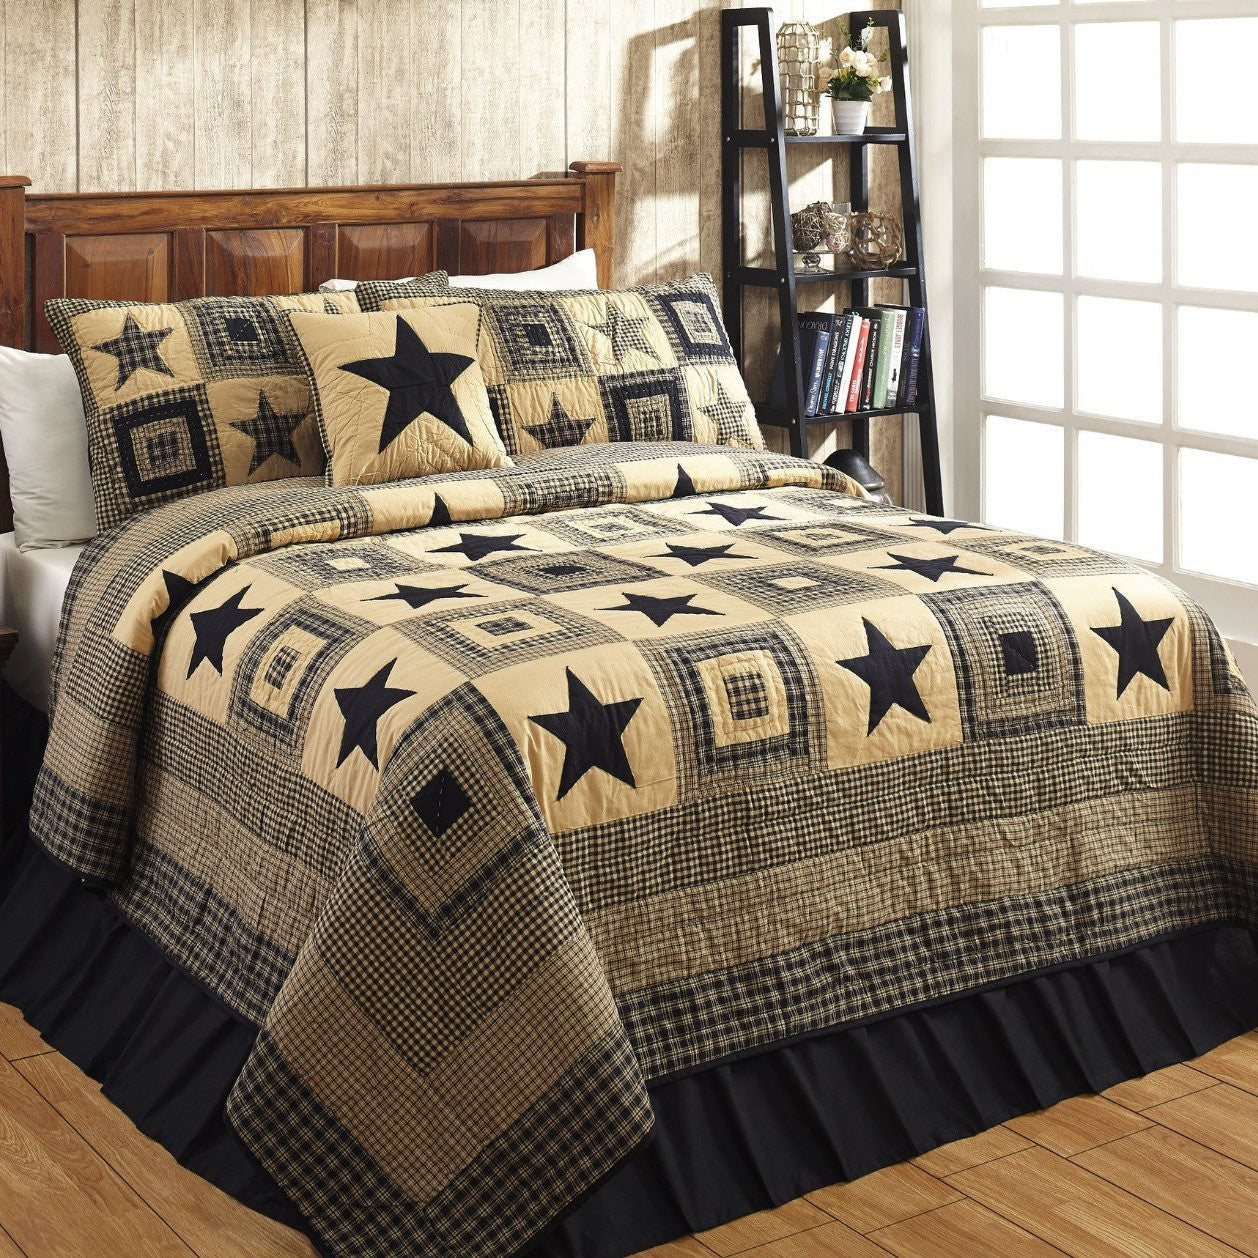 Colonial Star Black Amp Tan Quilted Bedding Set Dl Country